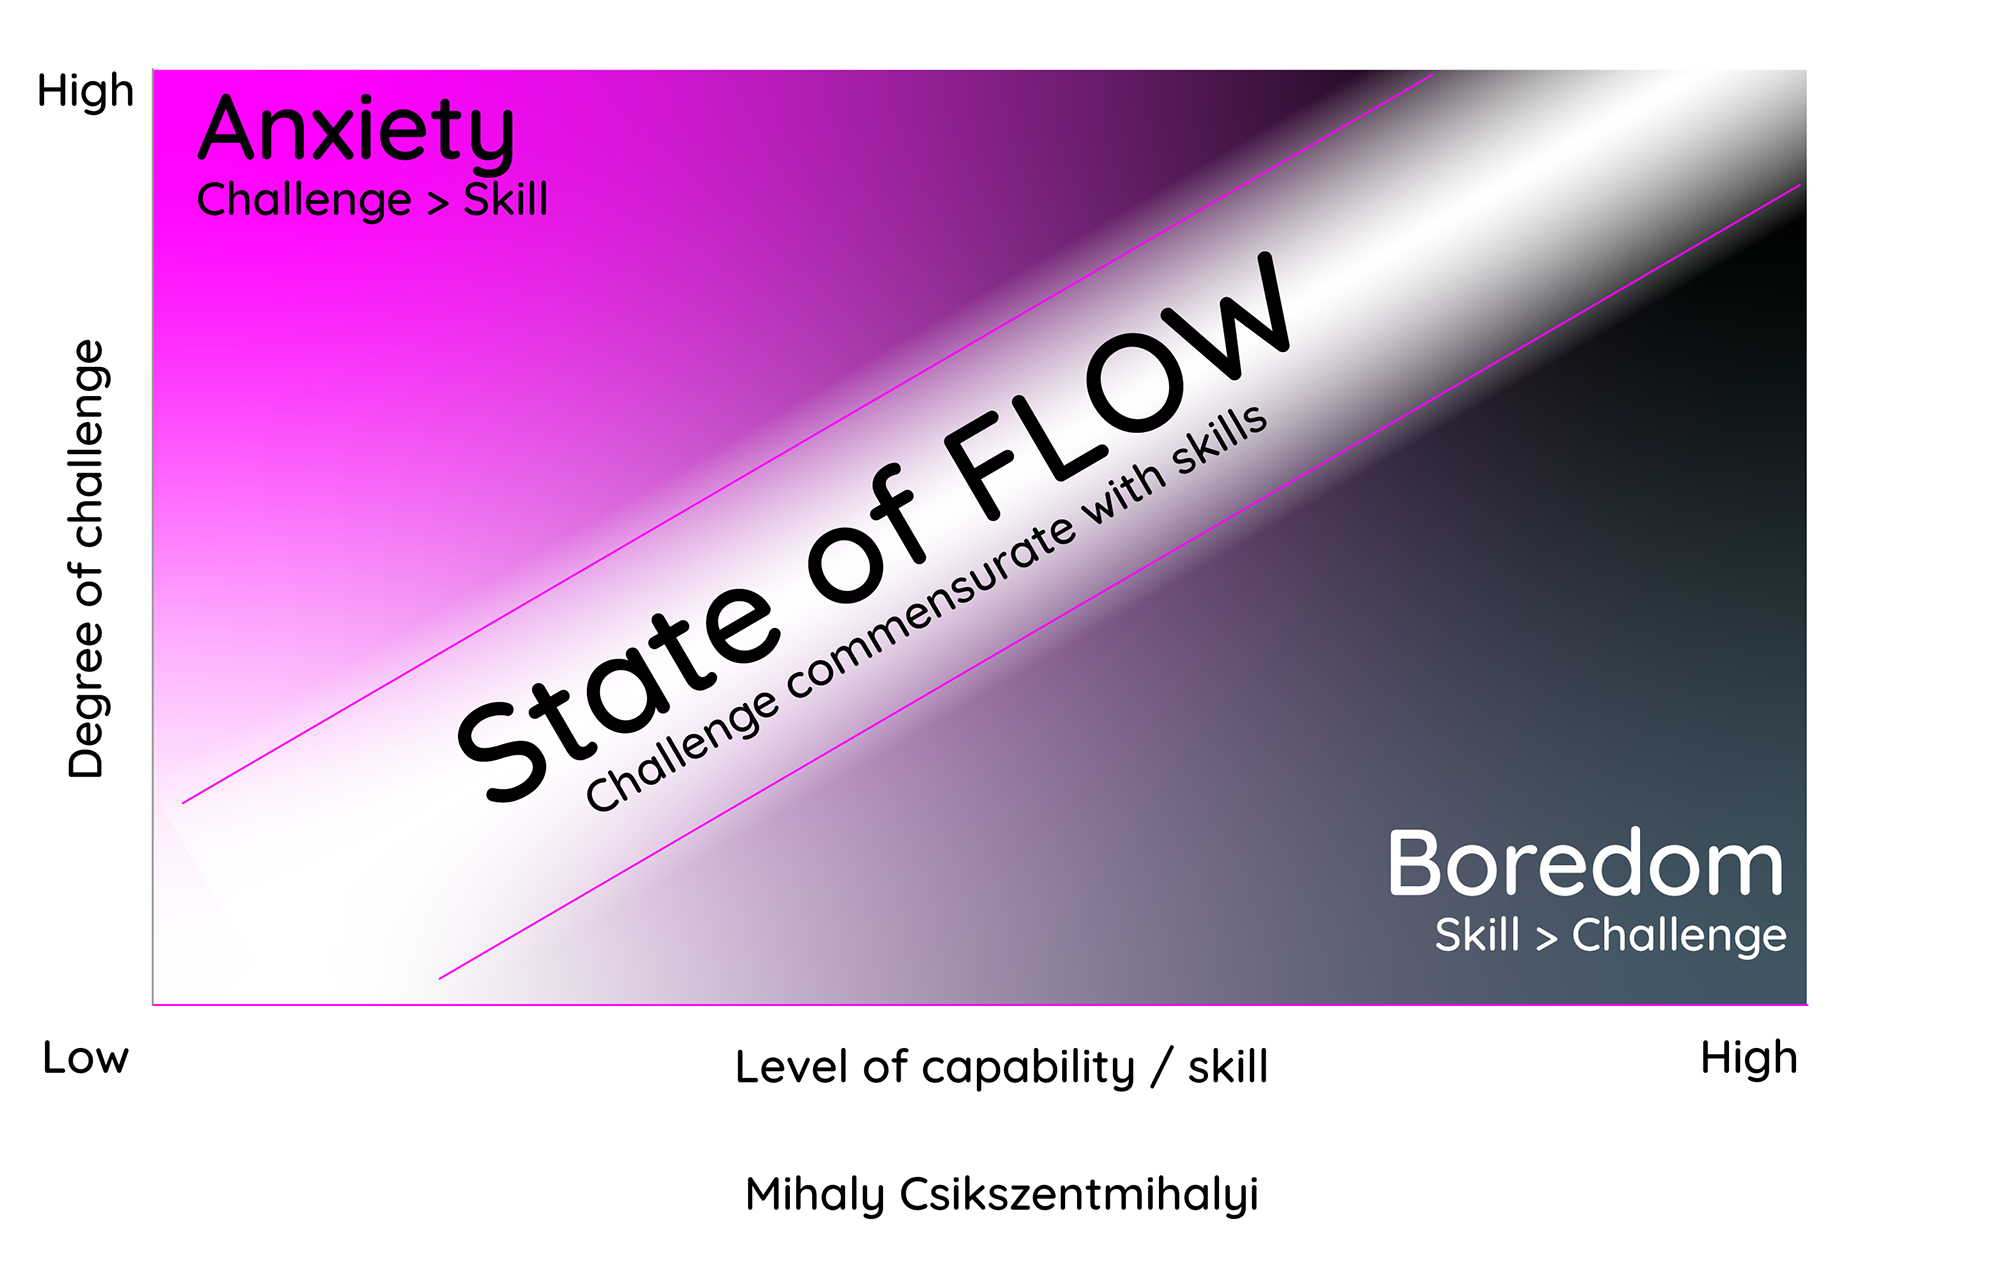 Graph showing degree of challenge from low to high on the vertical axis, and level of capability / skill from low to high on the horizontal. Running from bottom left to top right is the 'state of flow' zone where challenge is commensurate with skill.